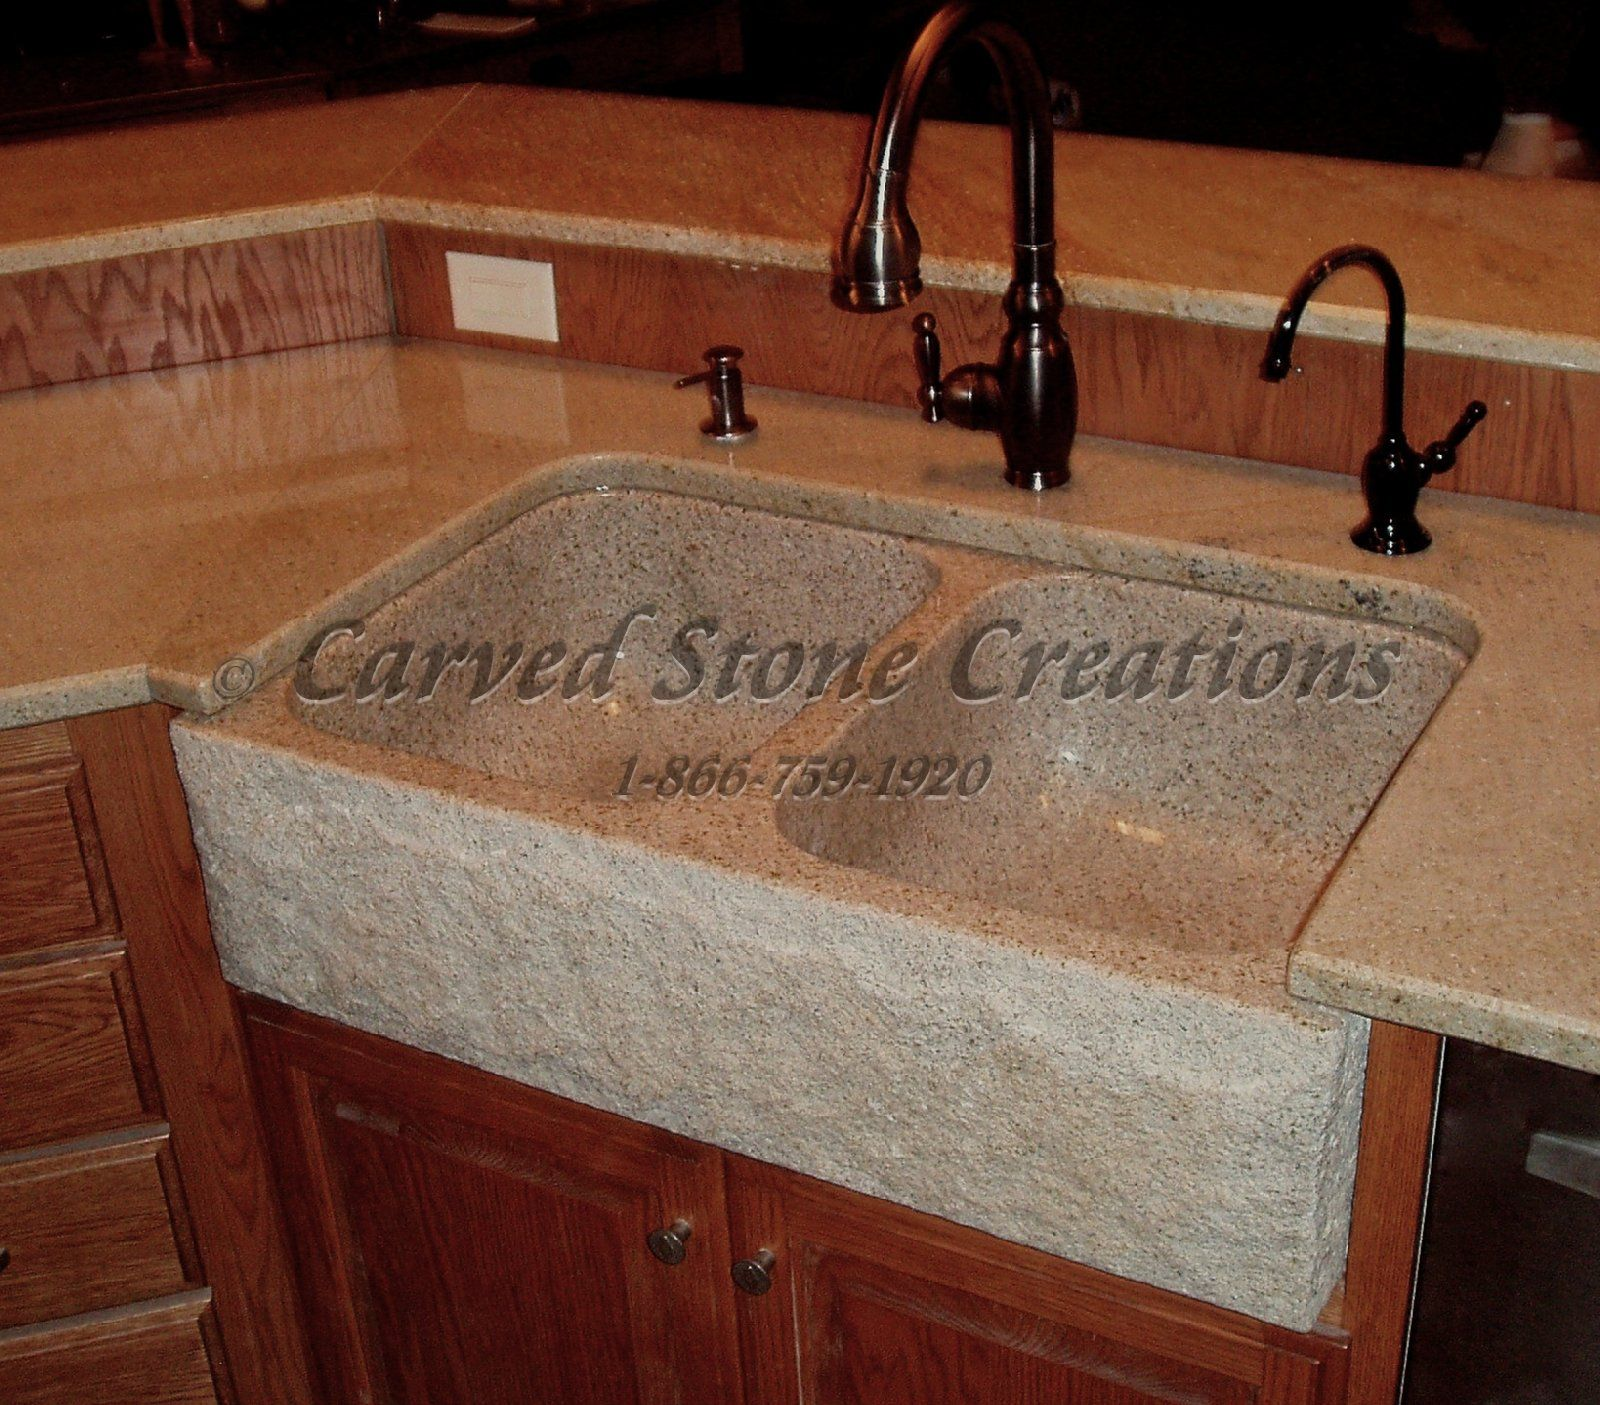 This granite kitchen sink is one of the many elegant natural stone sink designs available click on the picture to view more sinks kitchens sinks